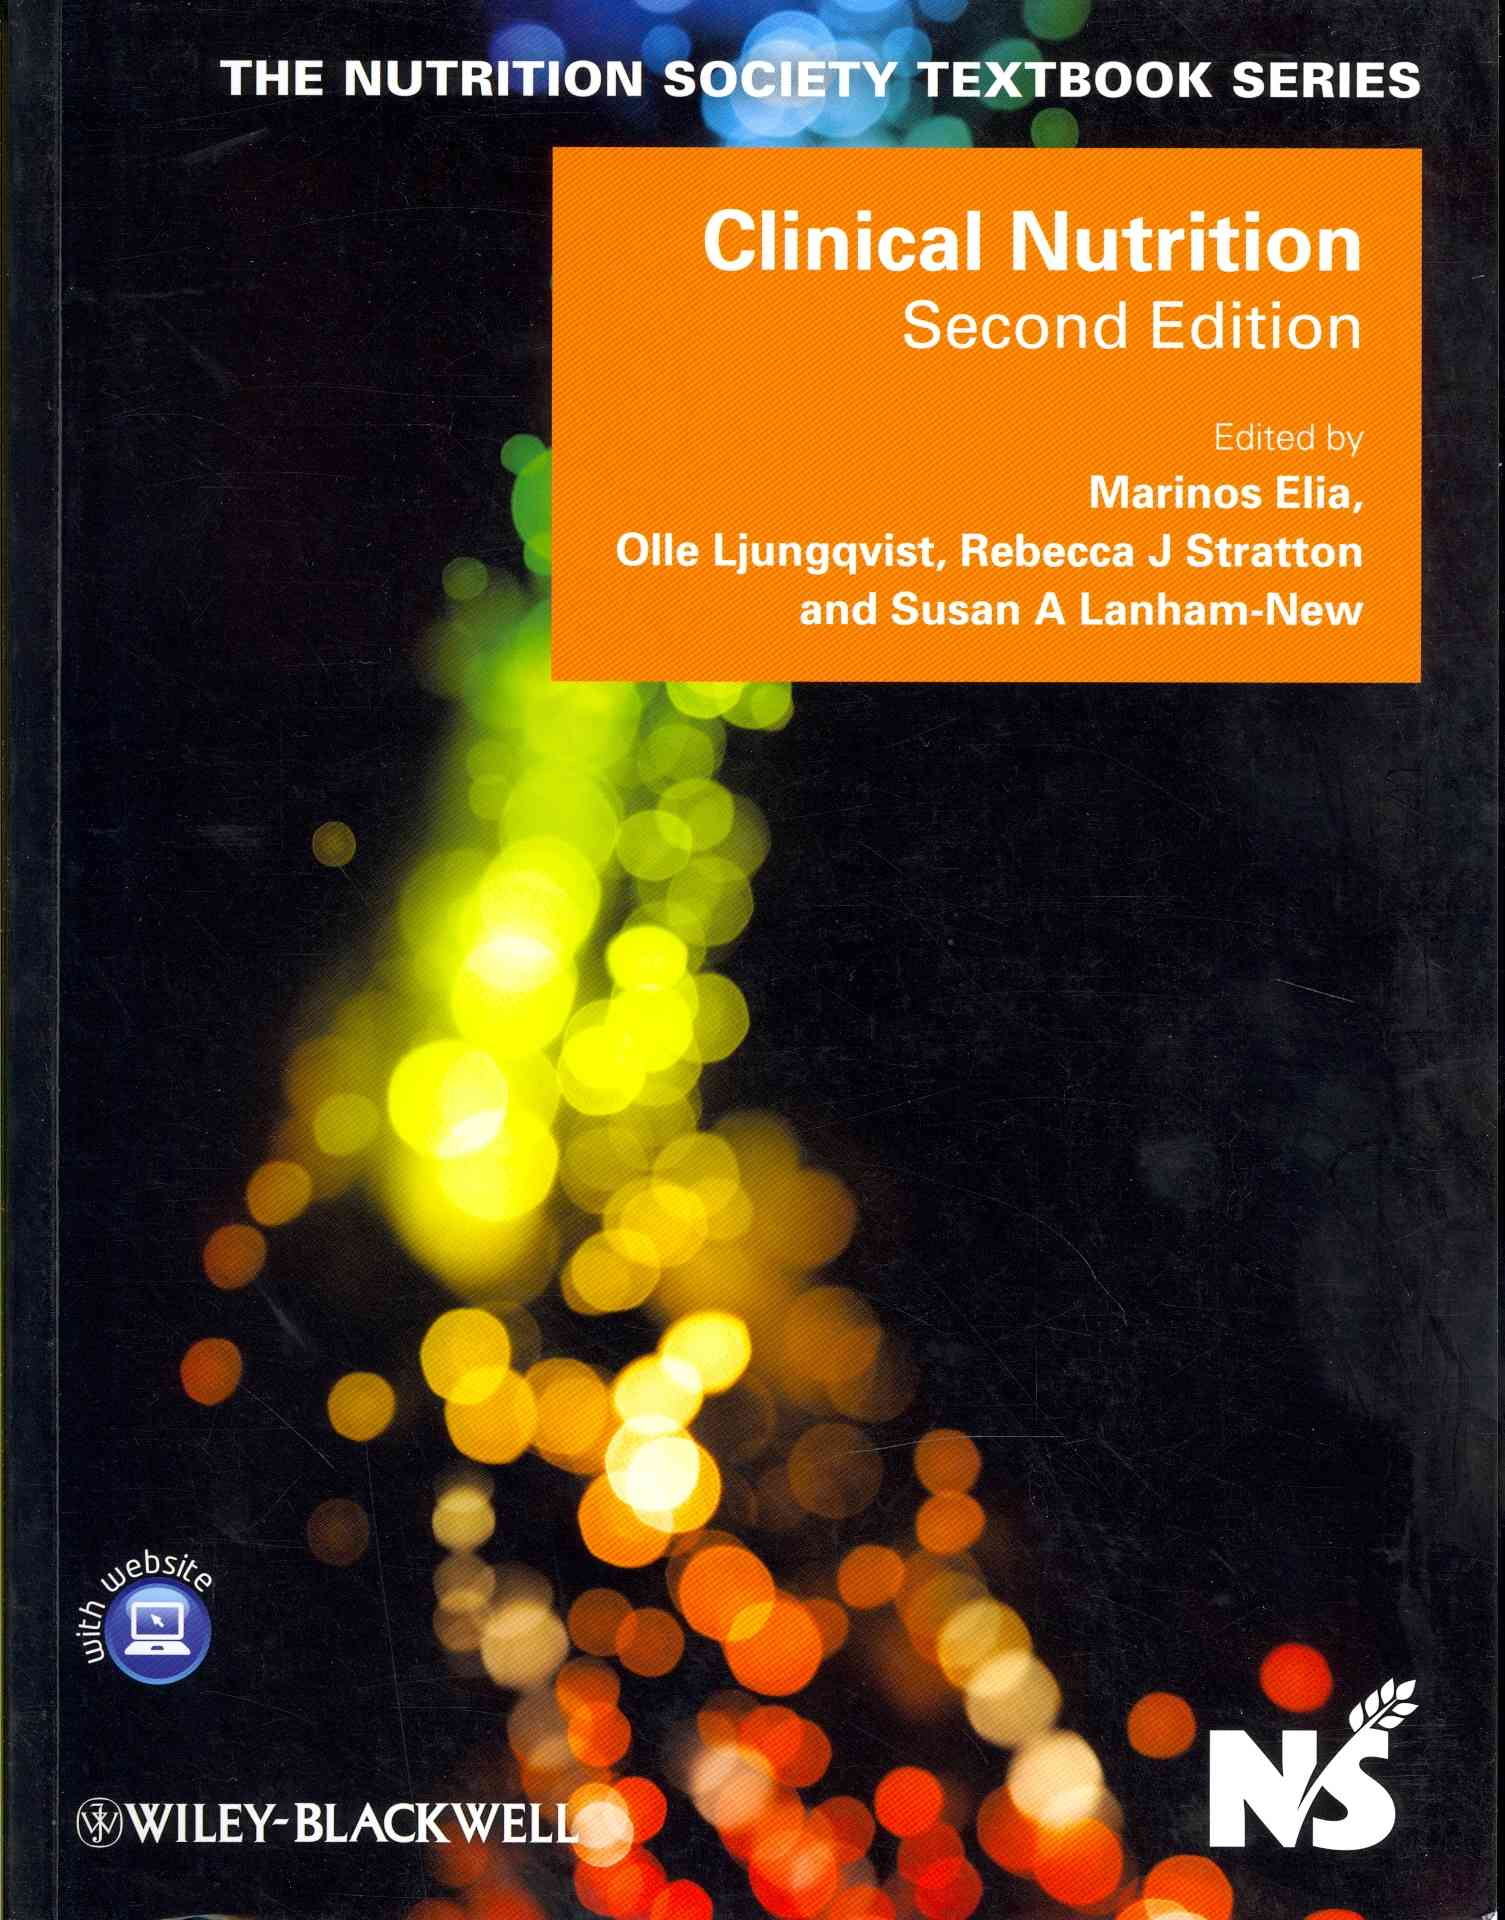 Clinical Nutrition By Elia, Marinos/ Ljungqvist, Olle/ Stratton, Rebecca/ Lanham-New, Susan A.